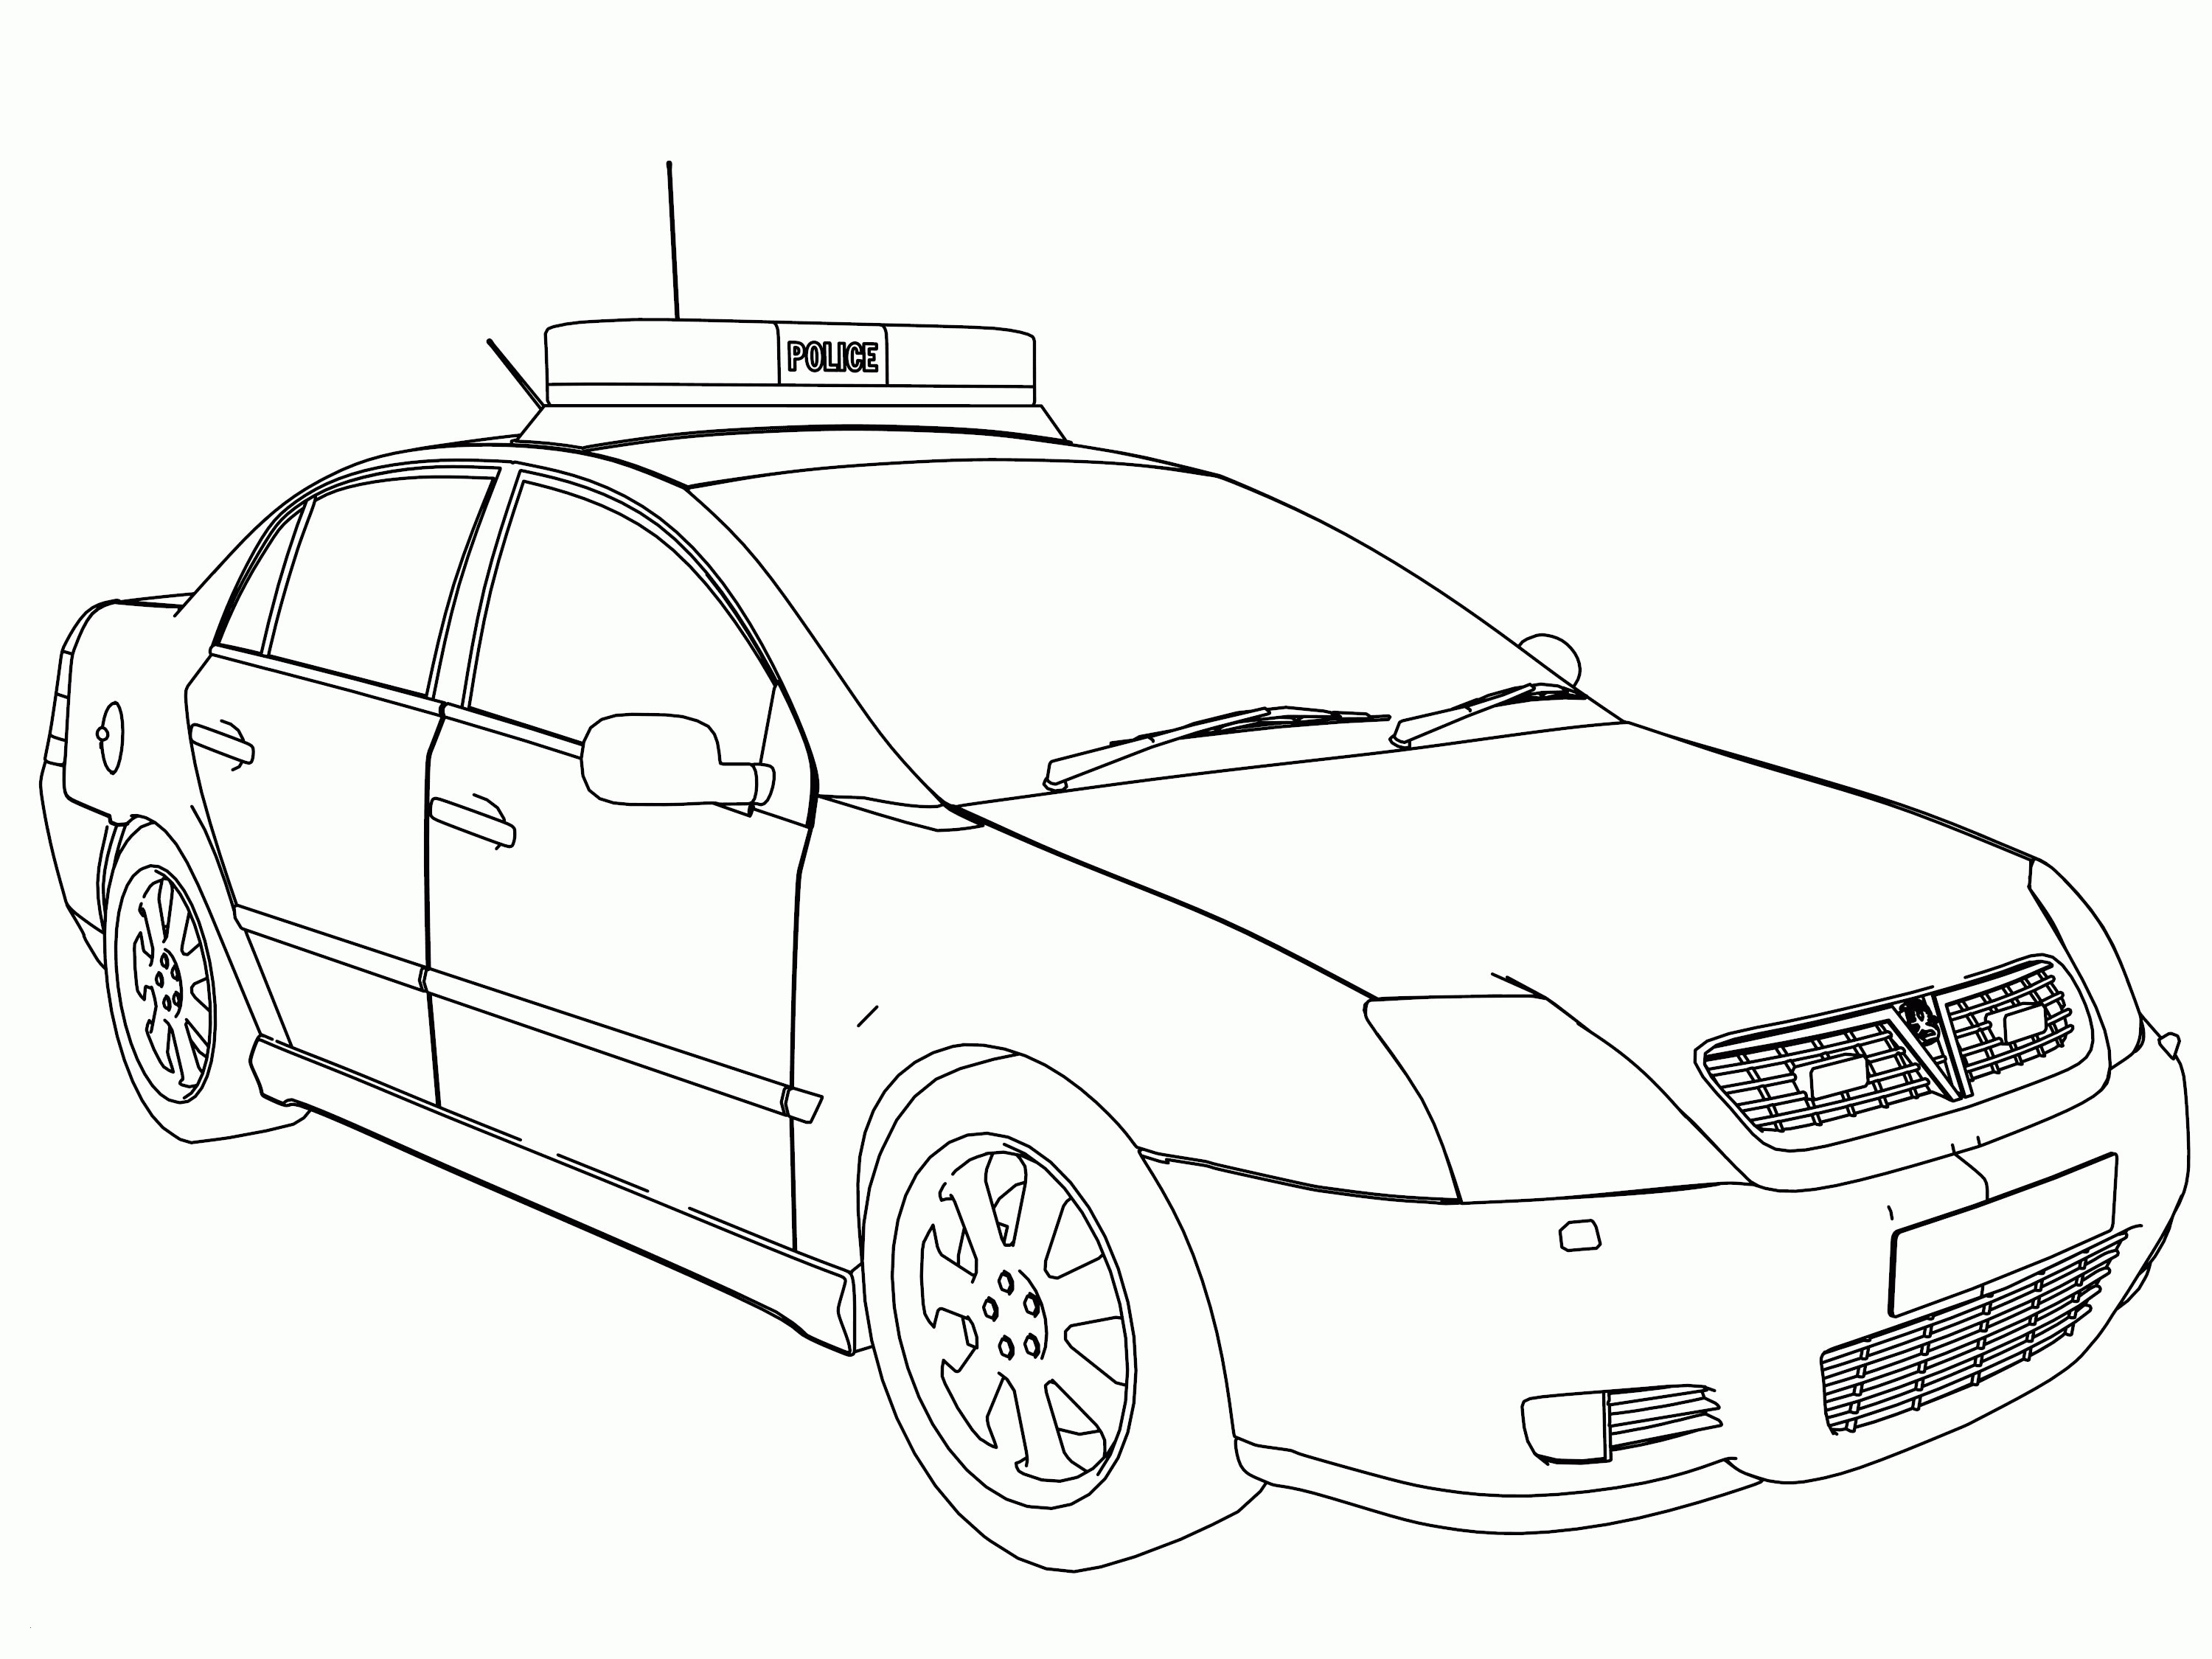 21 Police Car Coloring Pages Download - Coloring Sheets